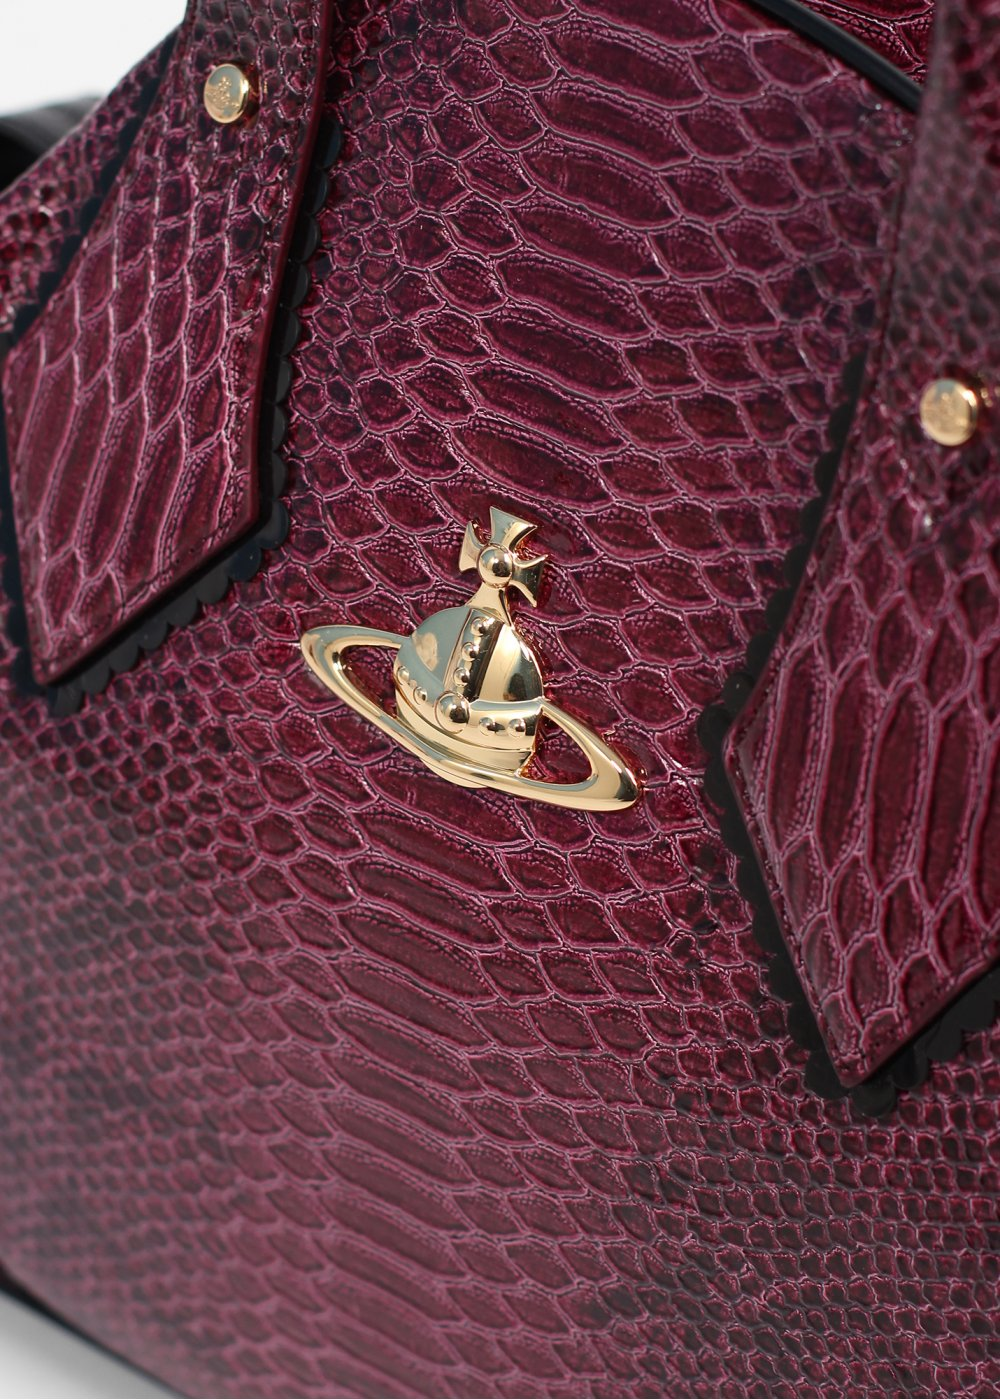 Vivienne Westwood Accessories Frilly Snake Bag Cherry Red ...